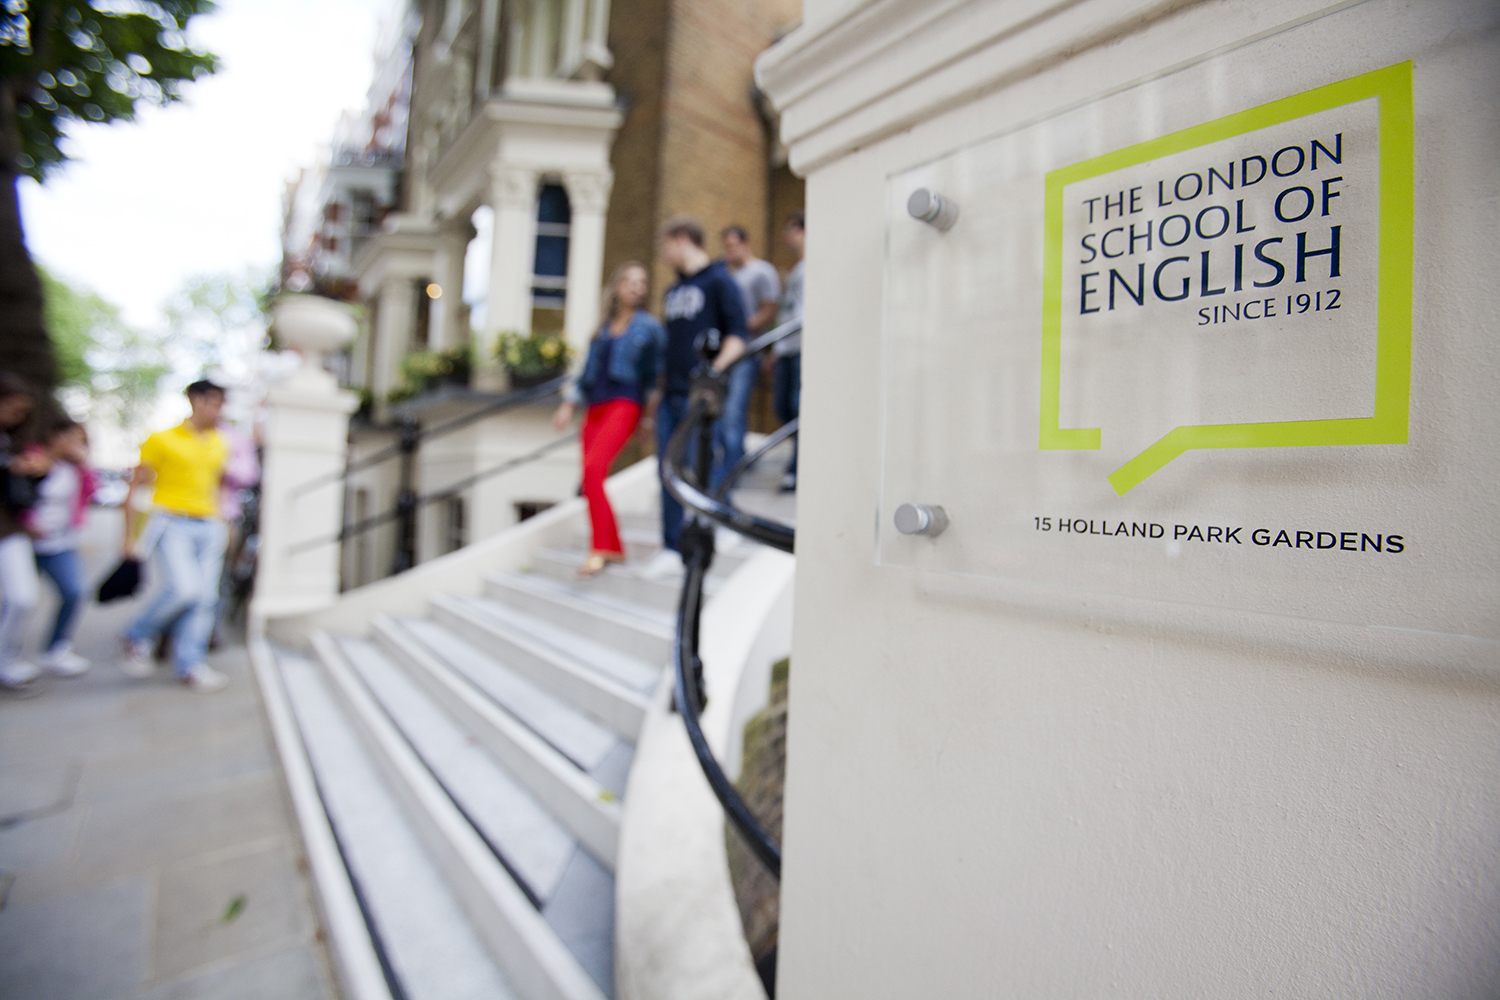 The London School of English: Your Experience